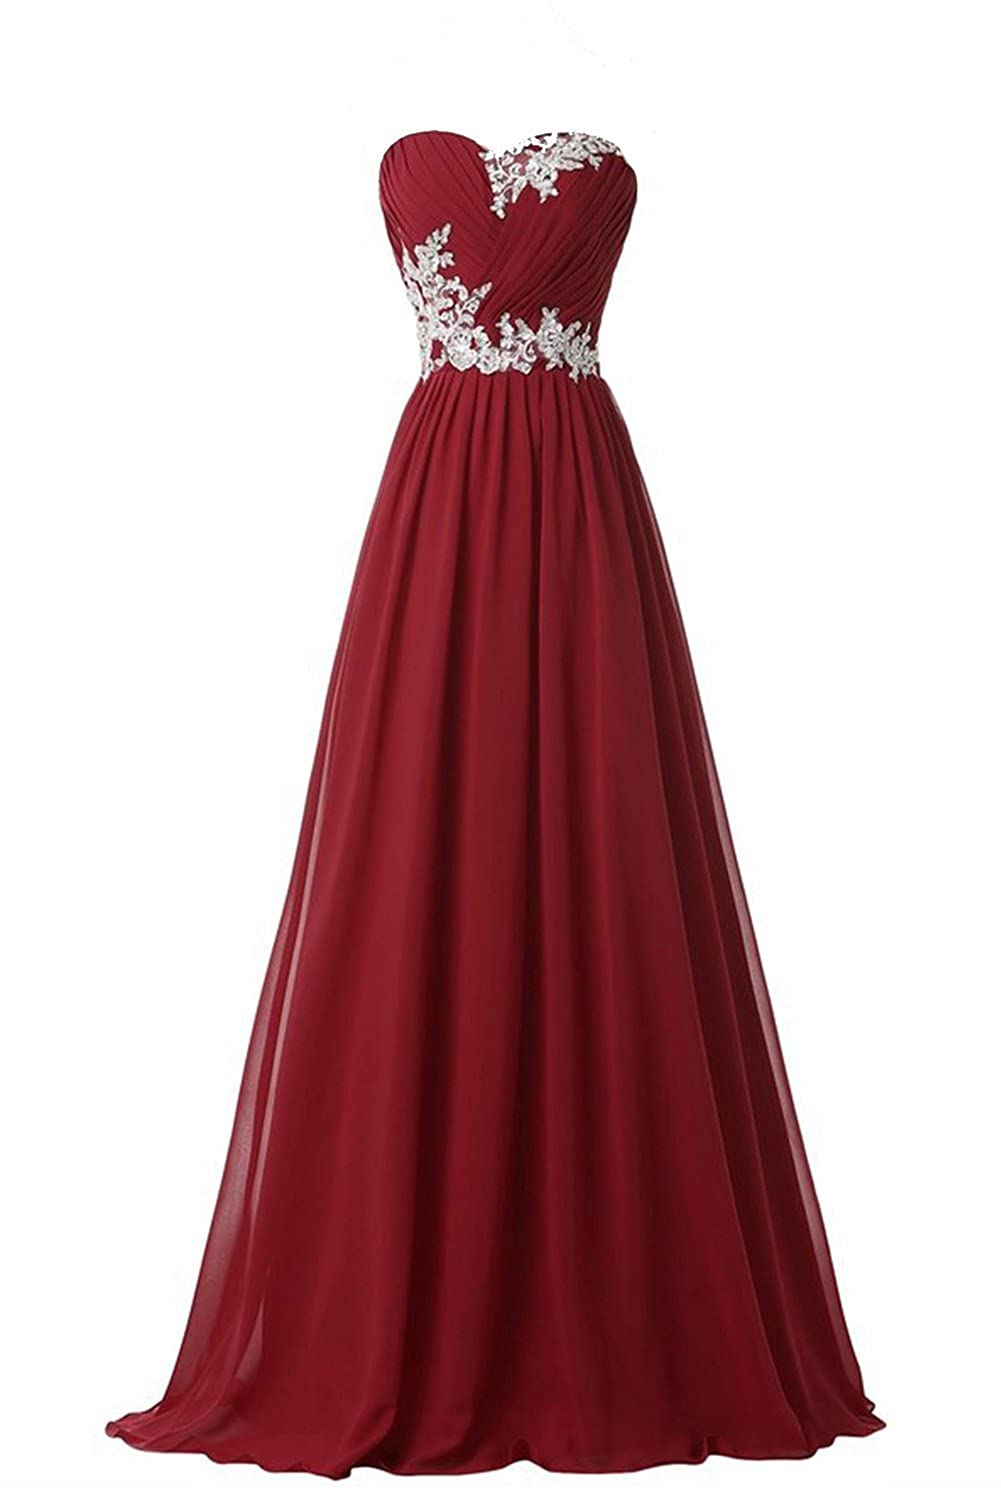 Olidress Women's Strapless Applique Long Evening Dress Prom Dress